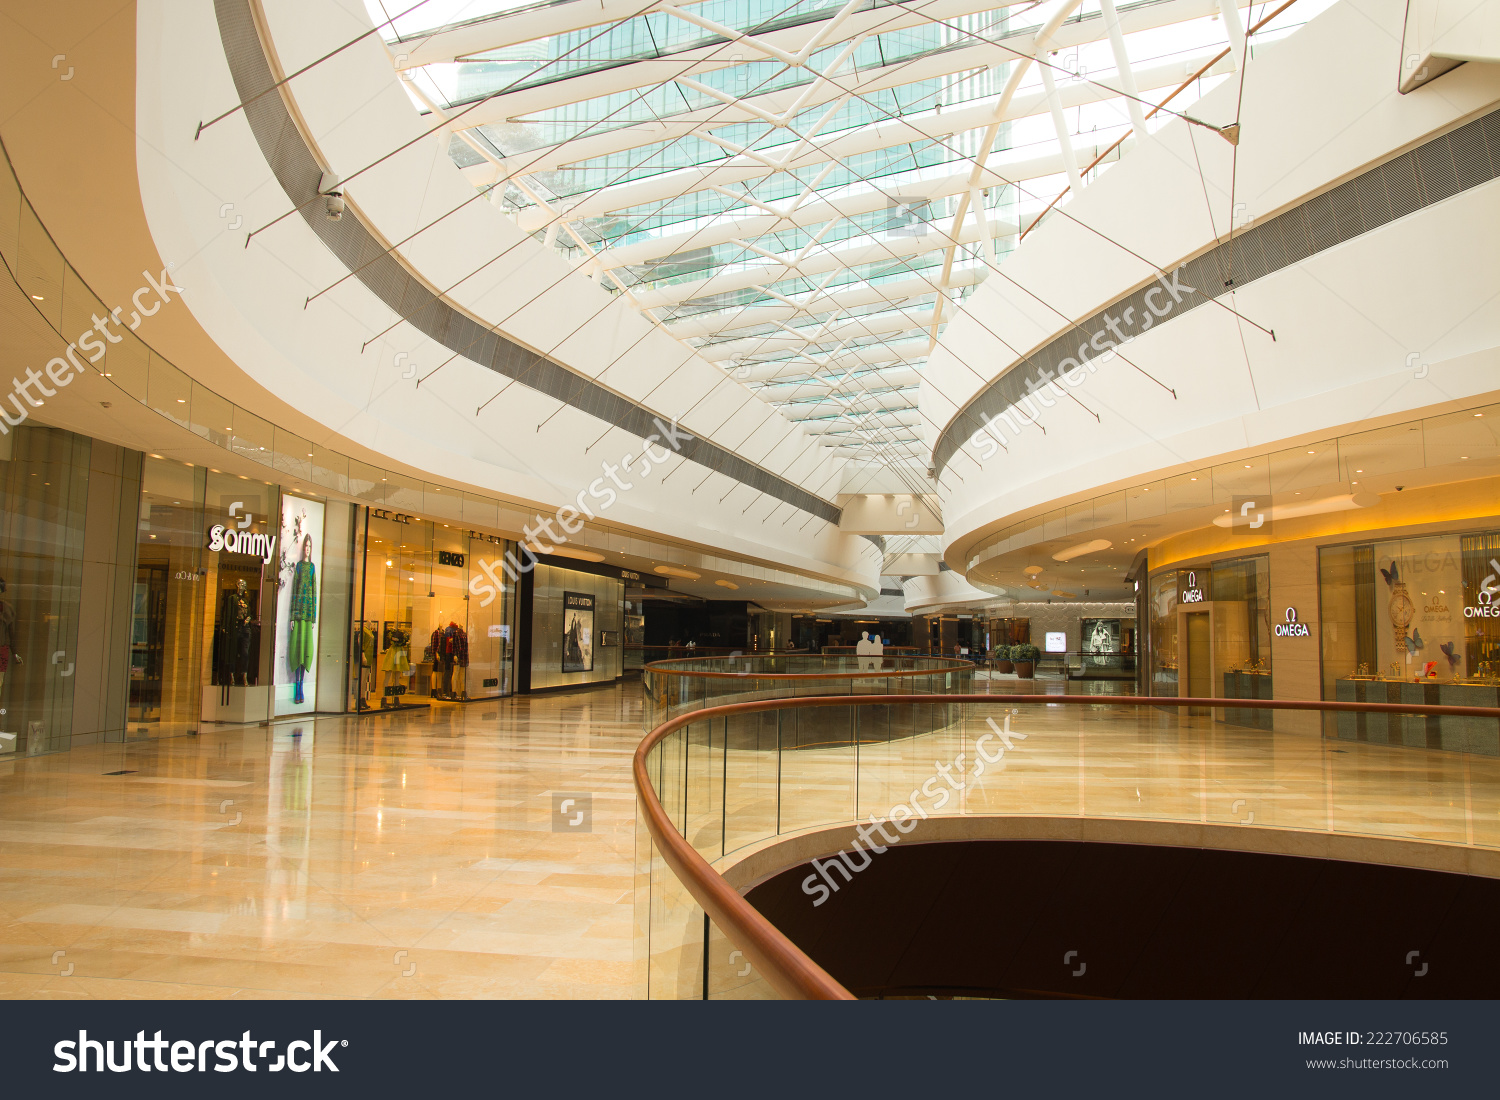 stock-photo-guangzhou-china-october-taikoo-hui-is-a-major-international-level-luxurious-shopping-222